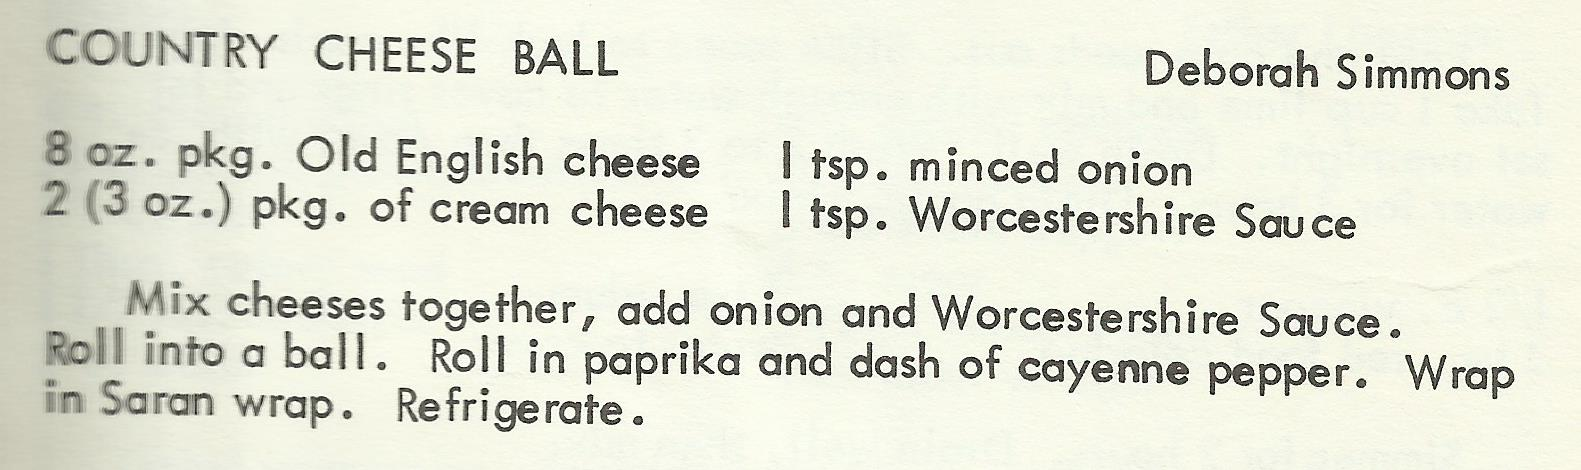 Country Cheese Ball